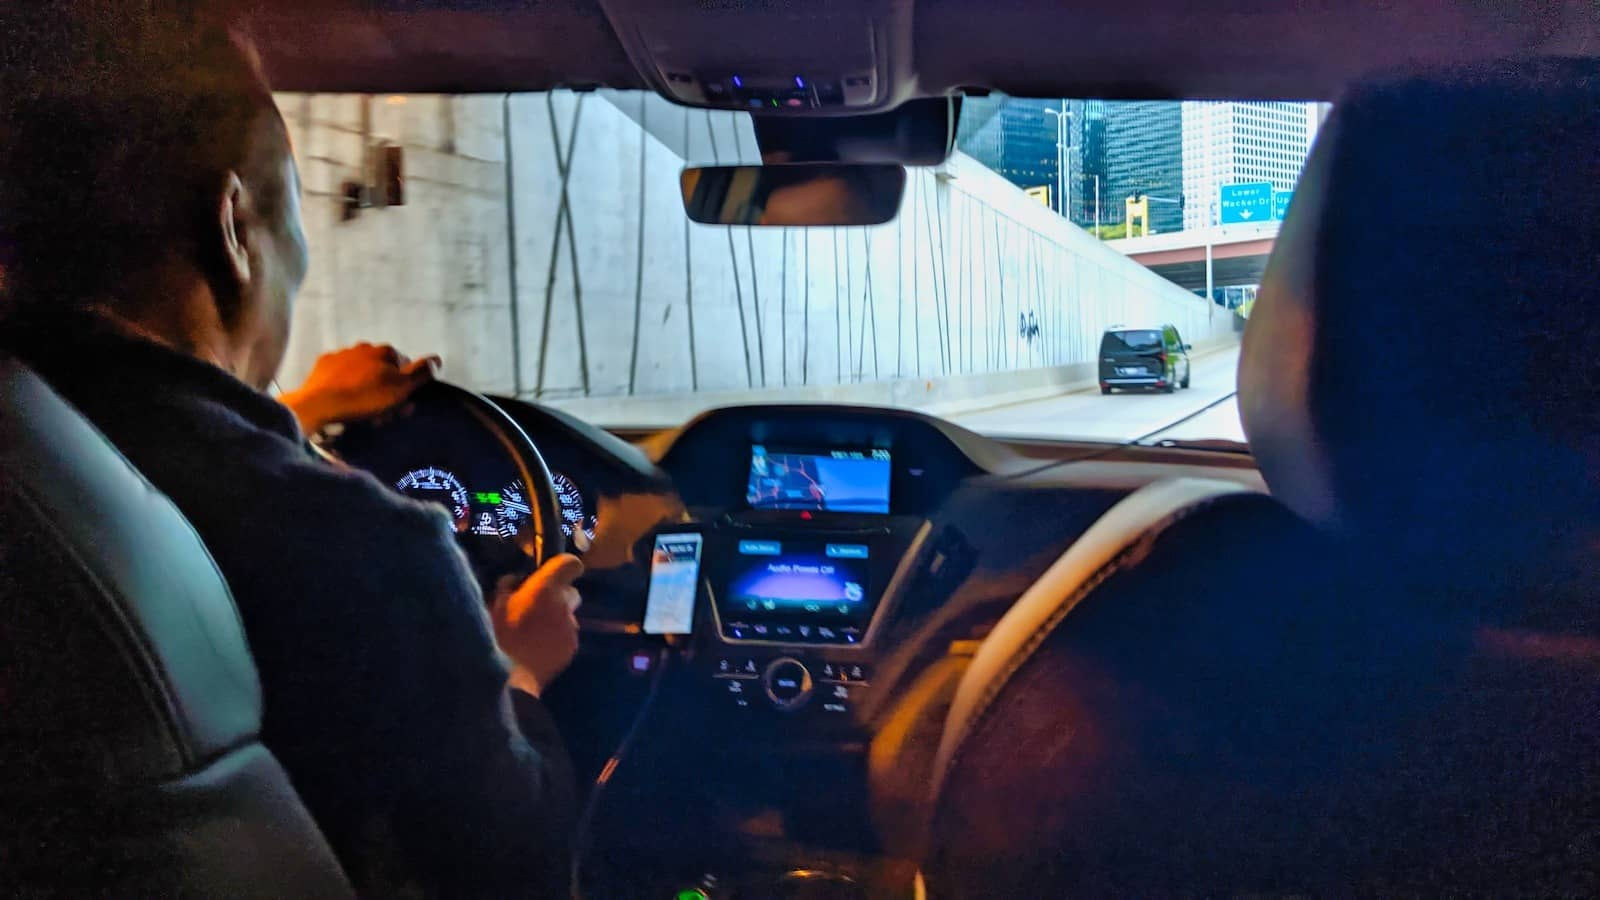 Chicago 2019 - Uber from O'Hare to the Sheraton Grand Chicago